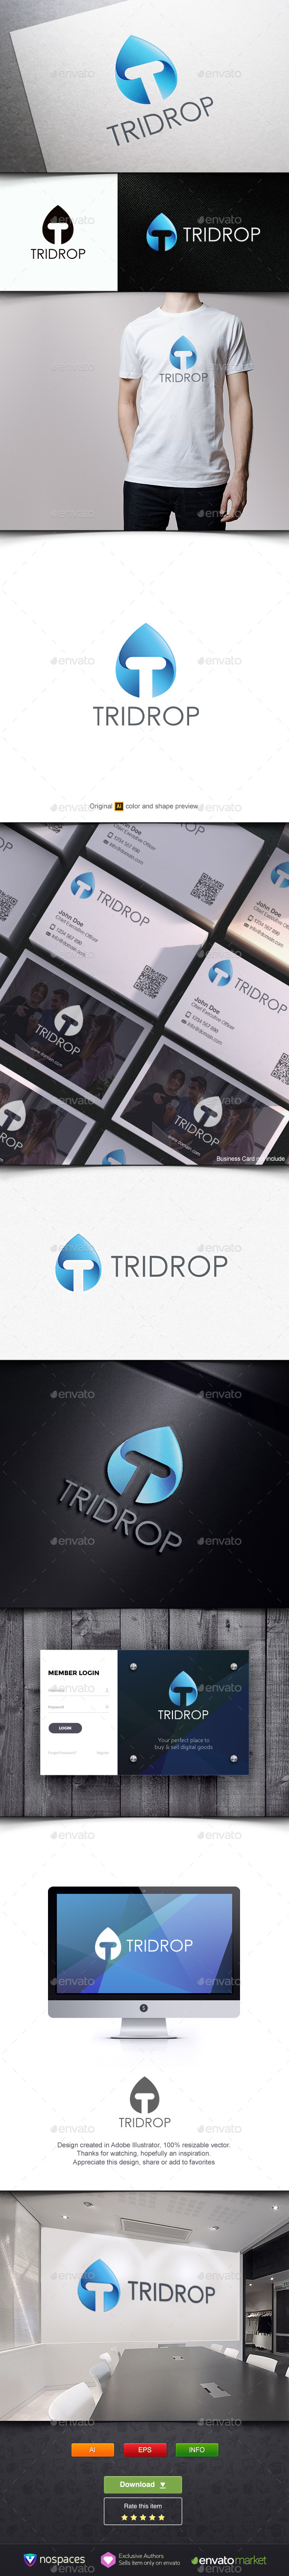 GraphicRiver Tridrop 20229862